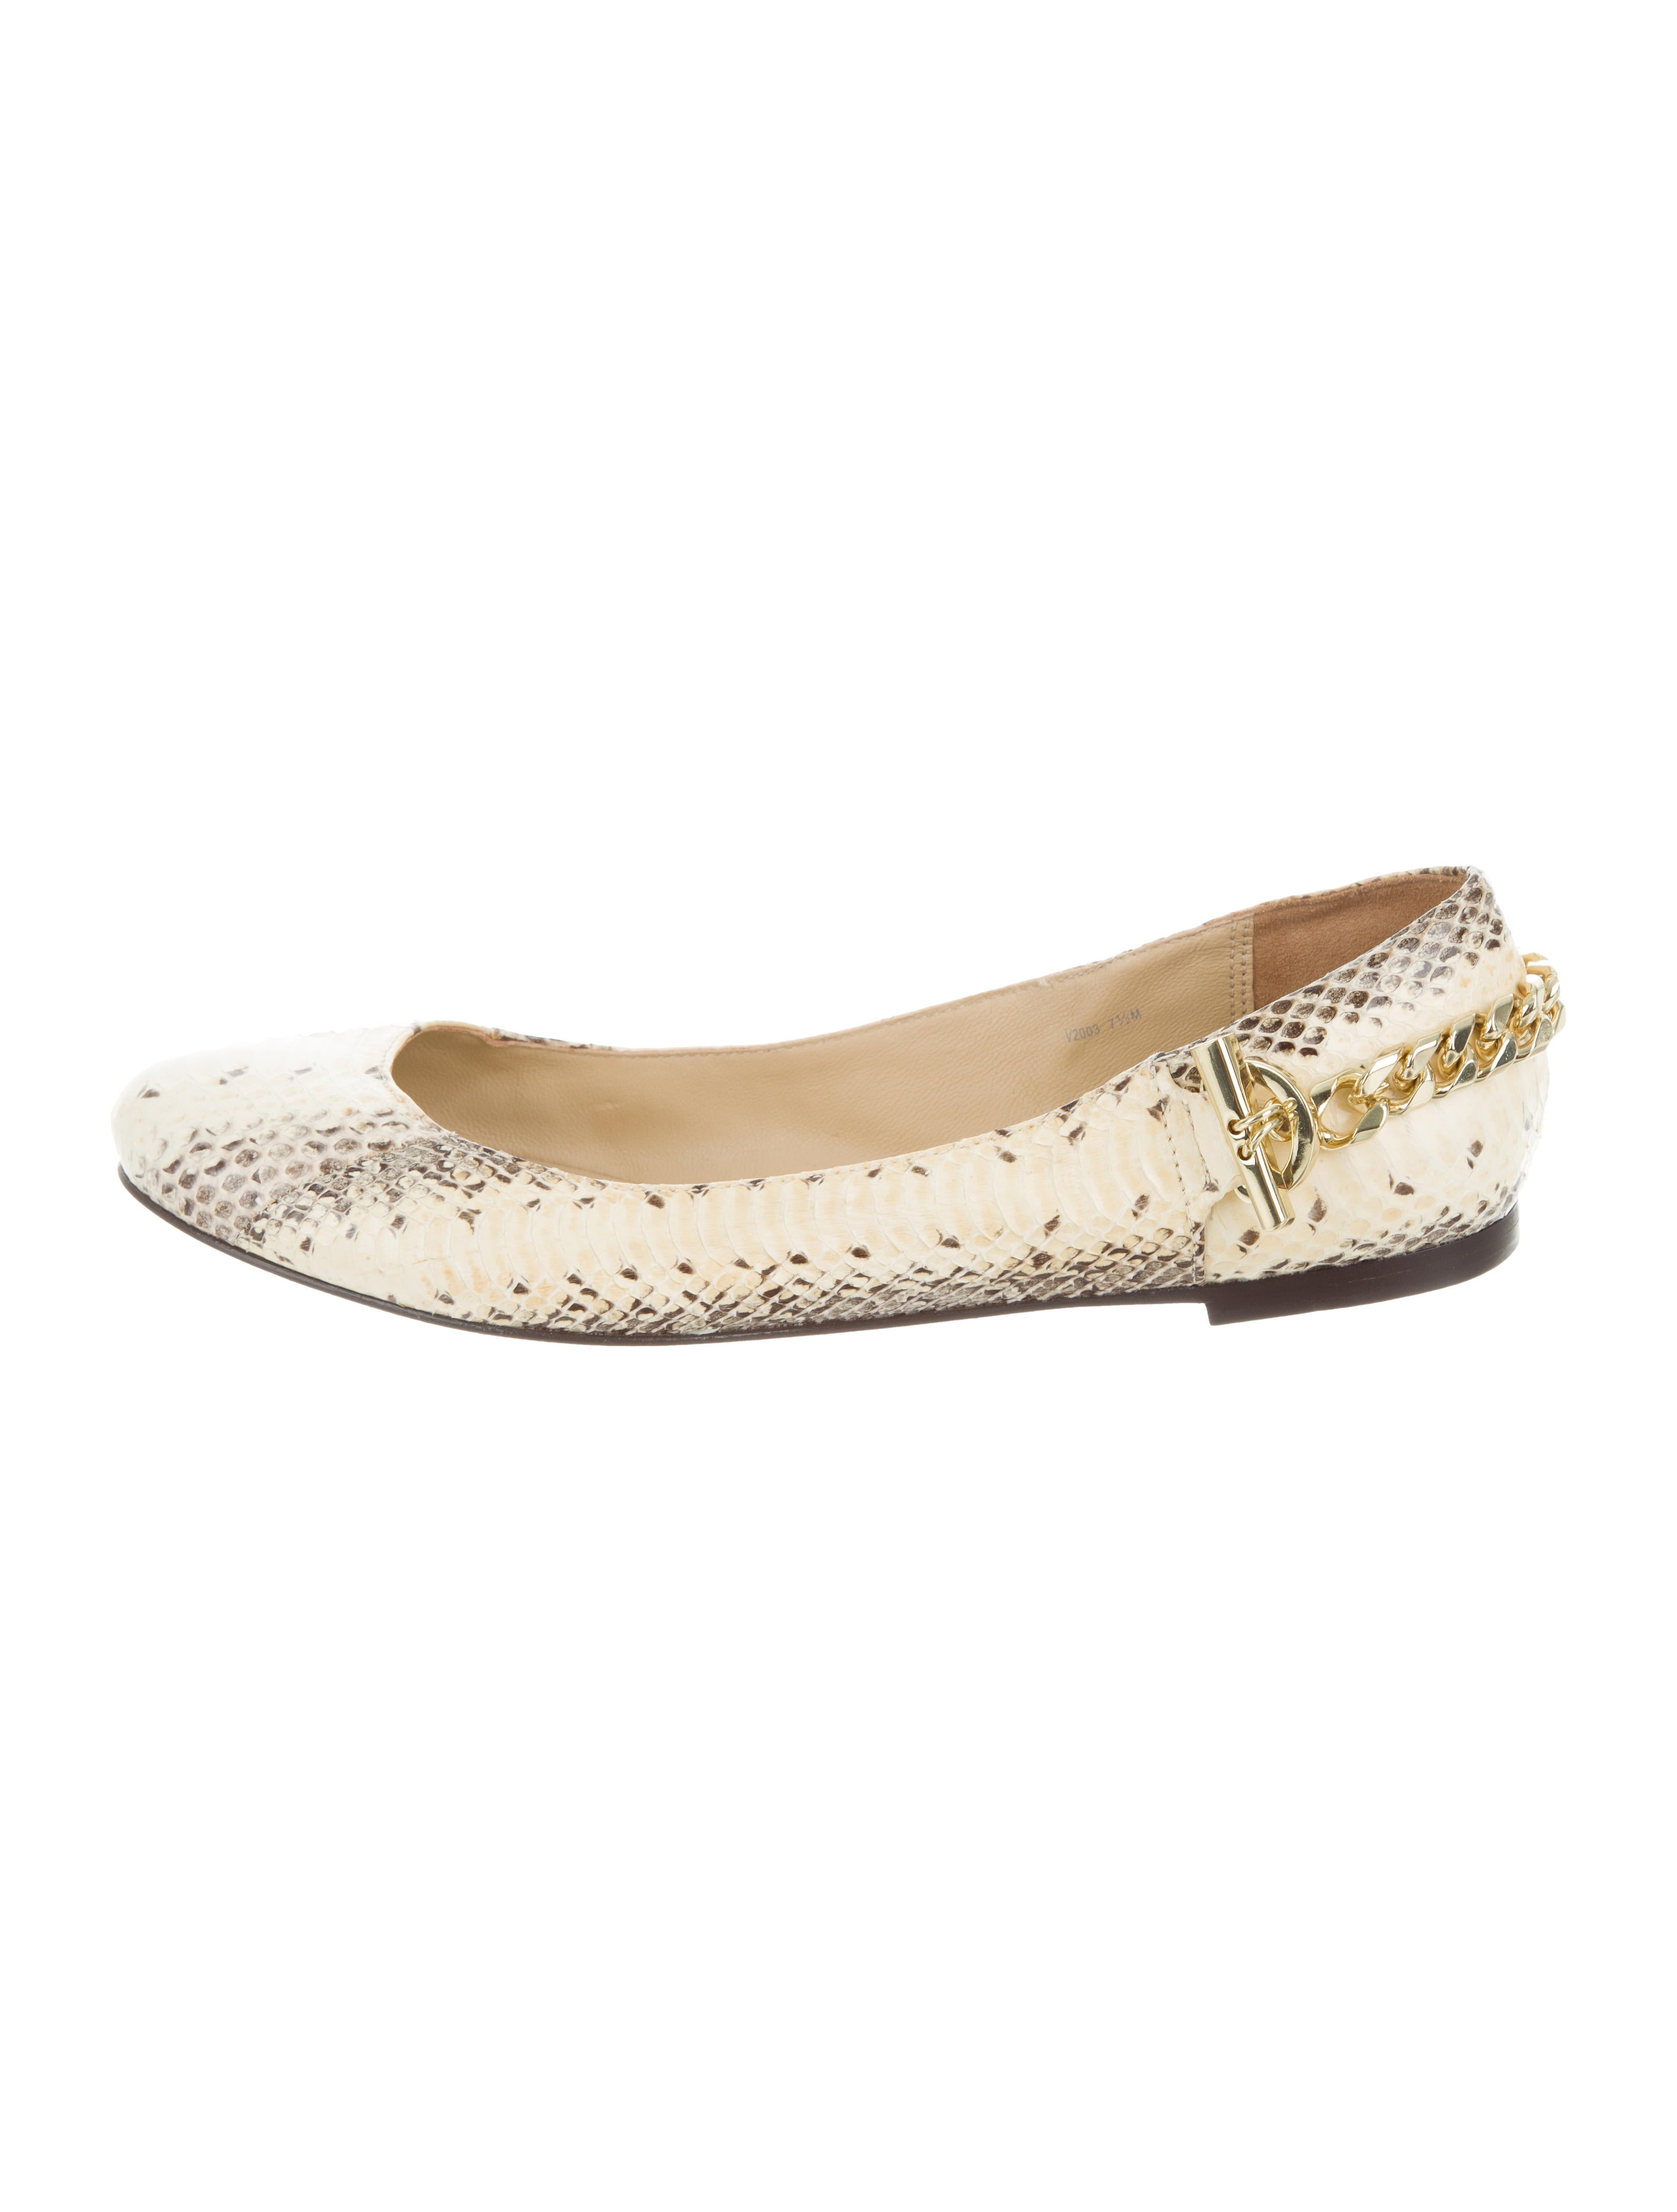 Rachel Zoe Python Chain-Link Flats clearance view discount browse discount exclusive for sale cheap sale manchester great sale RjXHkjQ